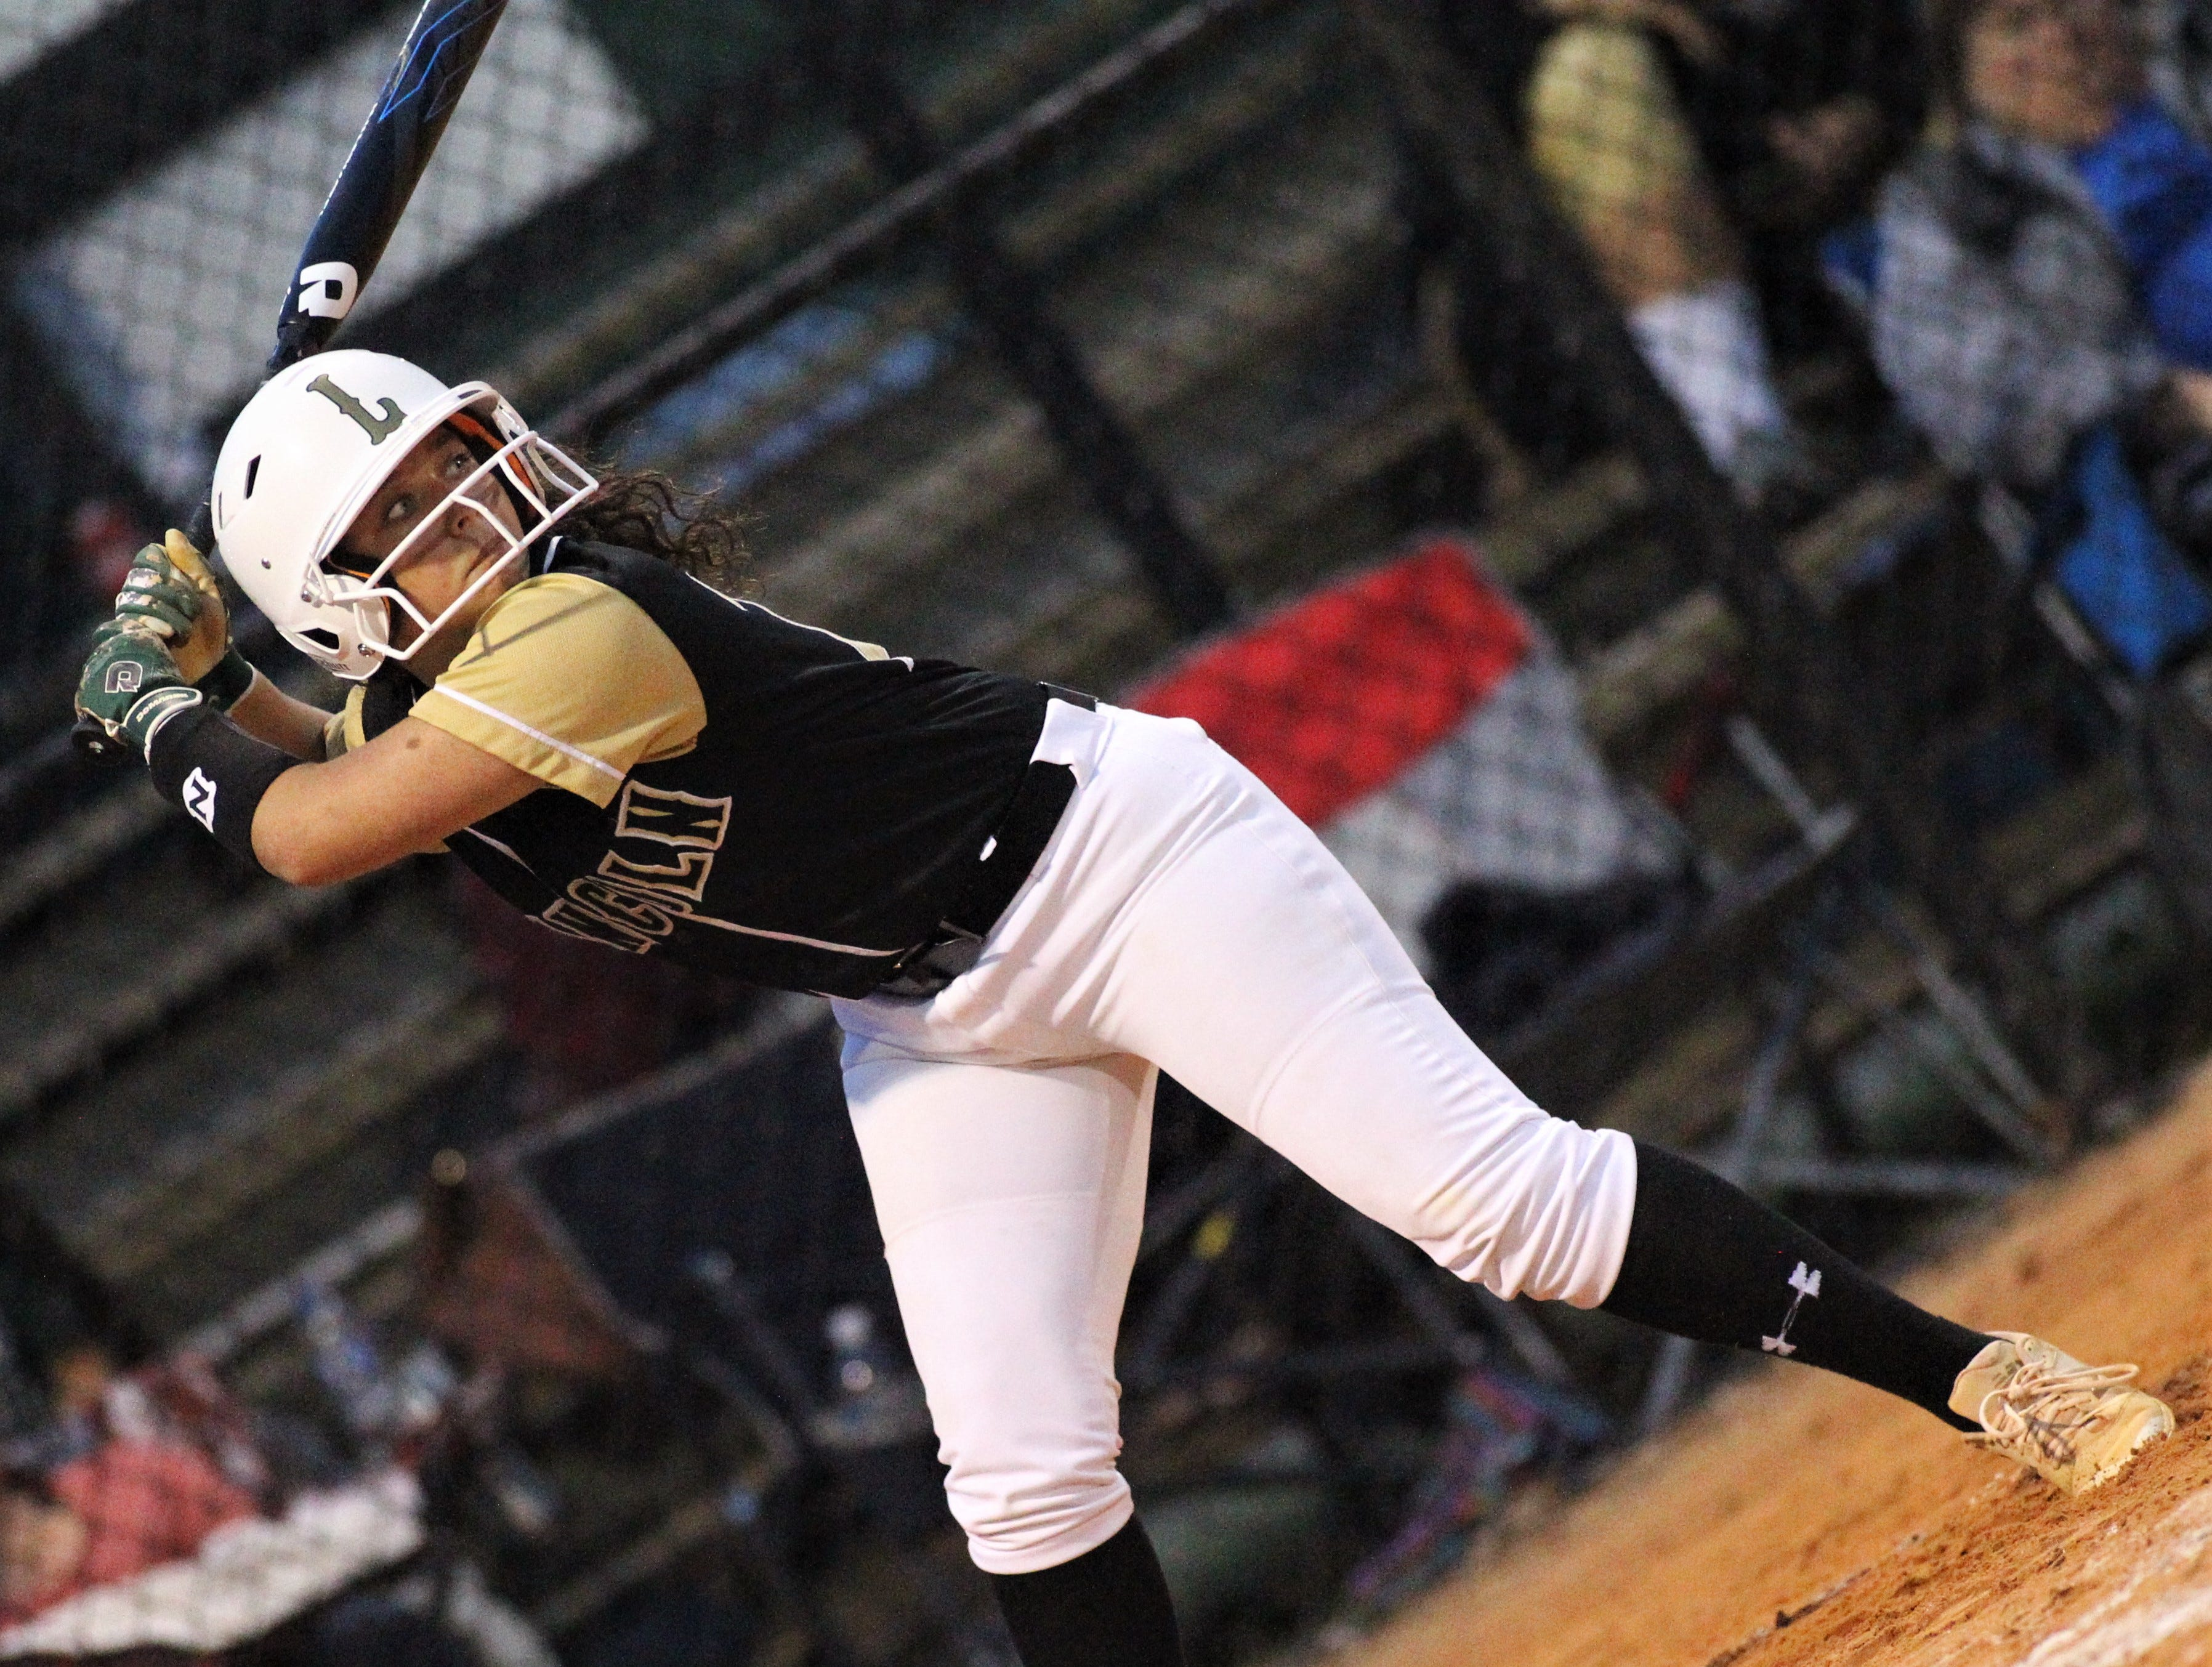 Lincoln sophomore Aydan Milgrom bats as Lincoln's softball team beat Florida High 7-3 on Thursday, April 4, 2019.